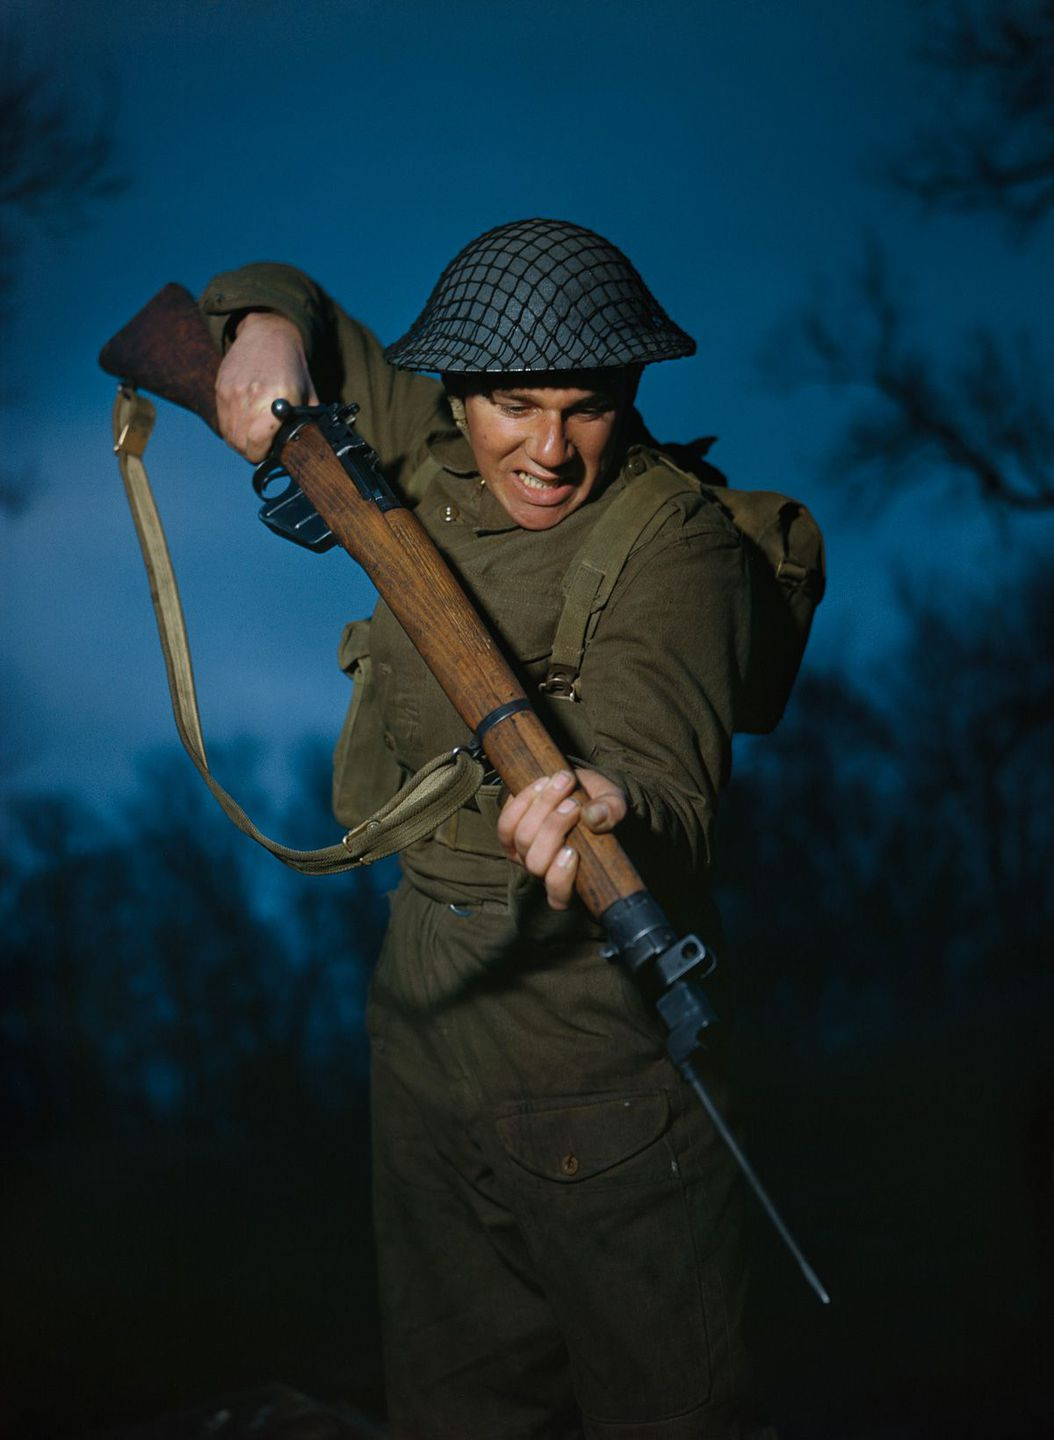 March 1944 Private Alfred Campin of the 6th Battalion, Durham Light Infantry during battle training in Britain.